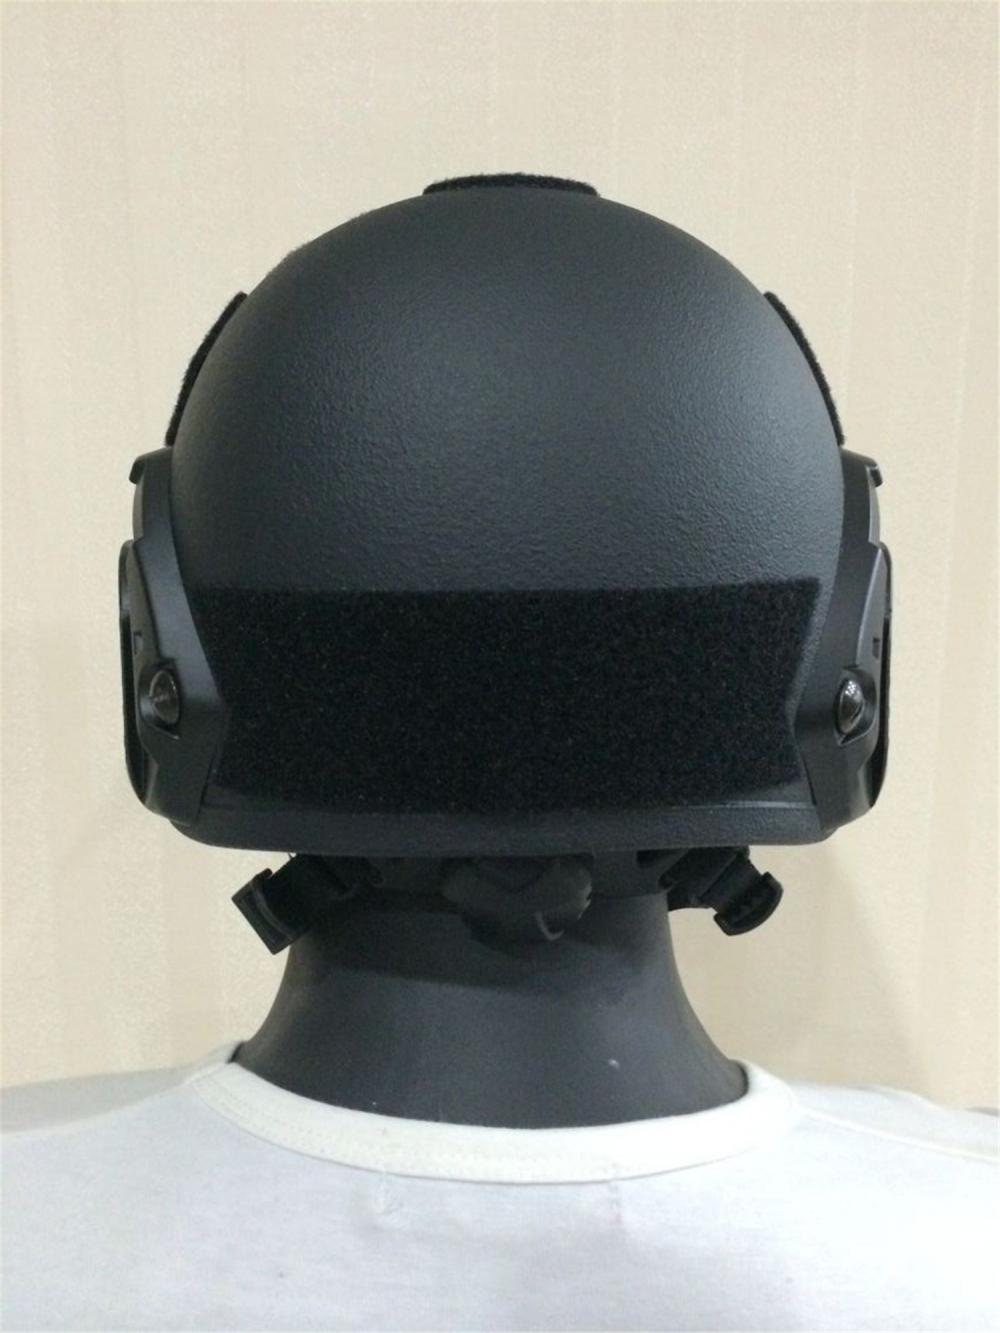 FAST Military Bullet Proof Helmet